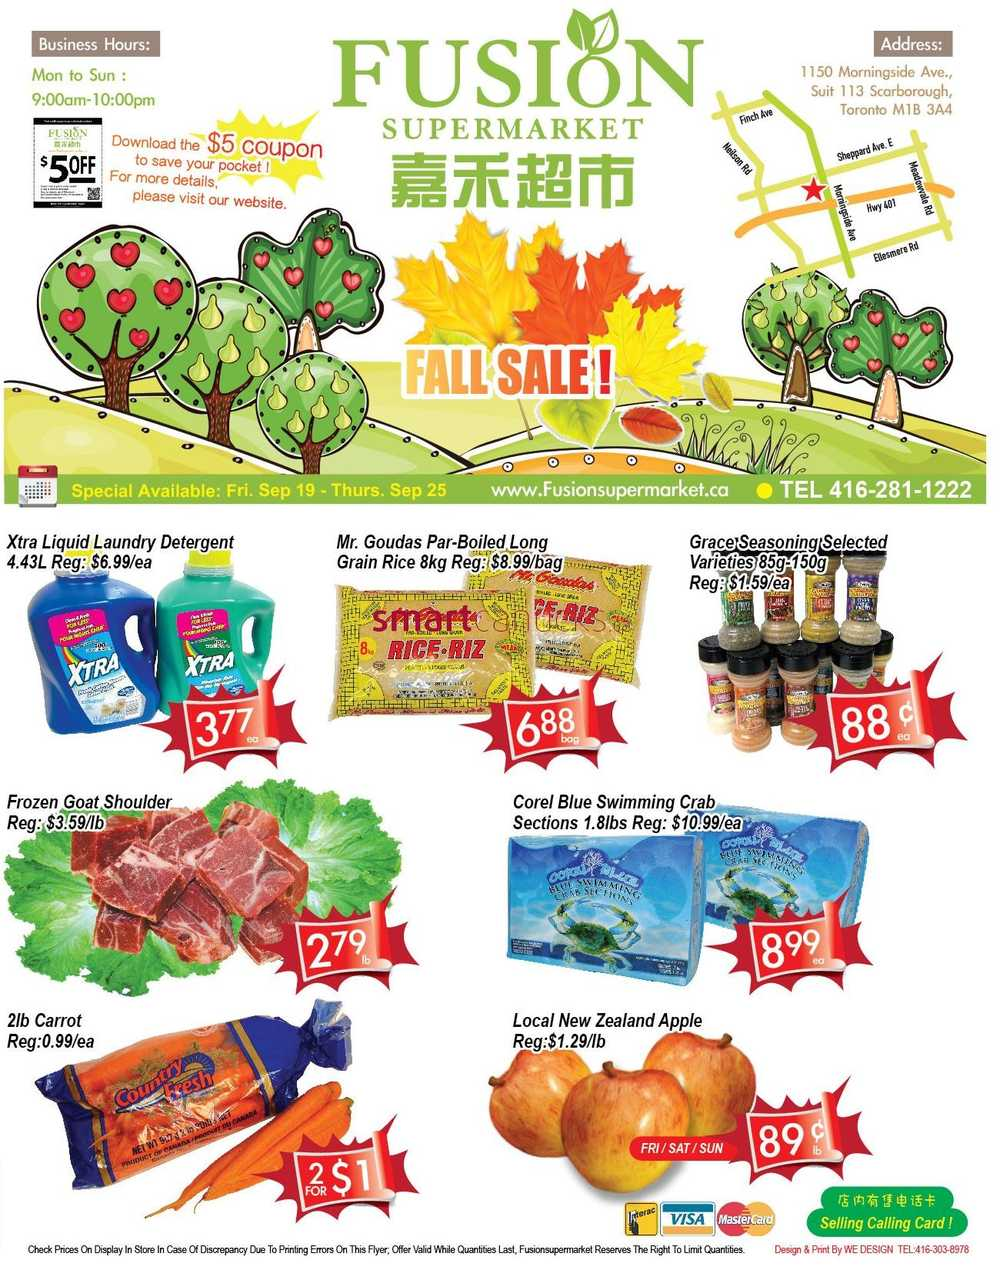 Fusion supermarket flyer september 19 to 25 for 1 2 3 fusion